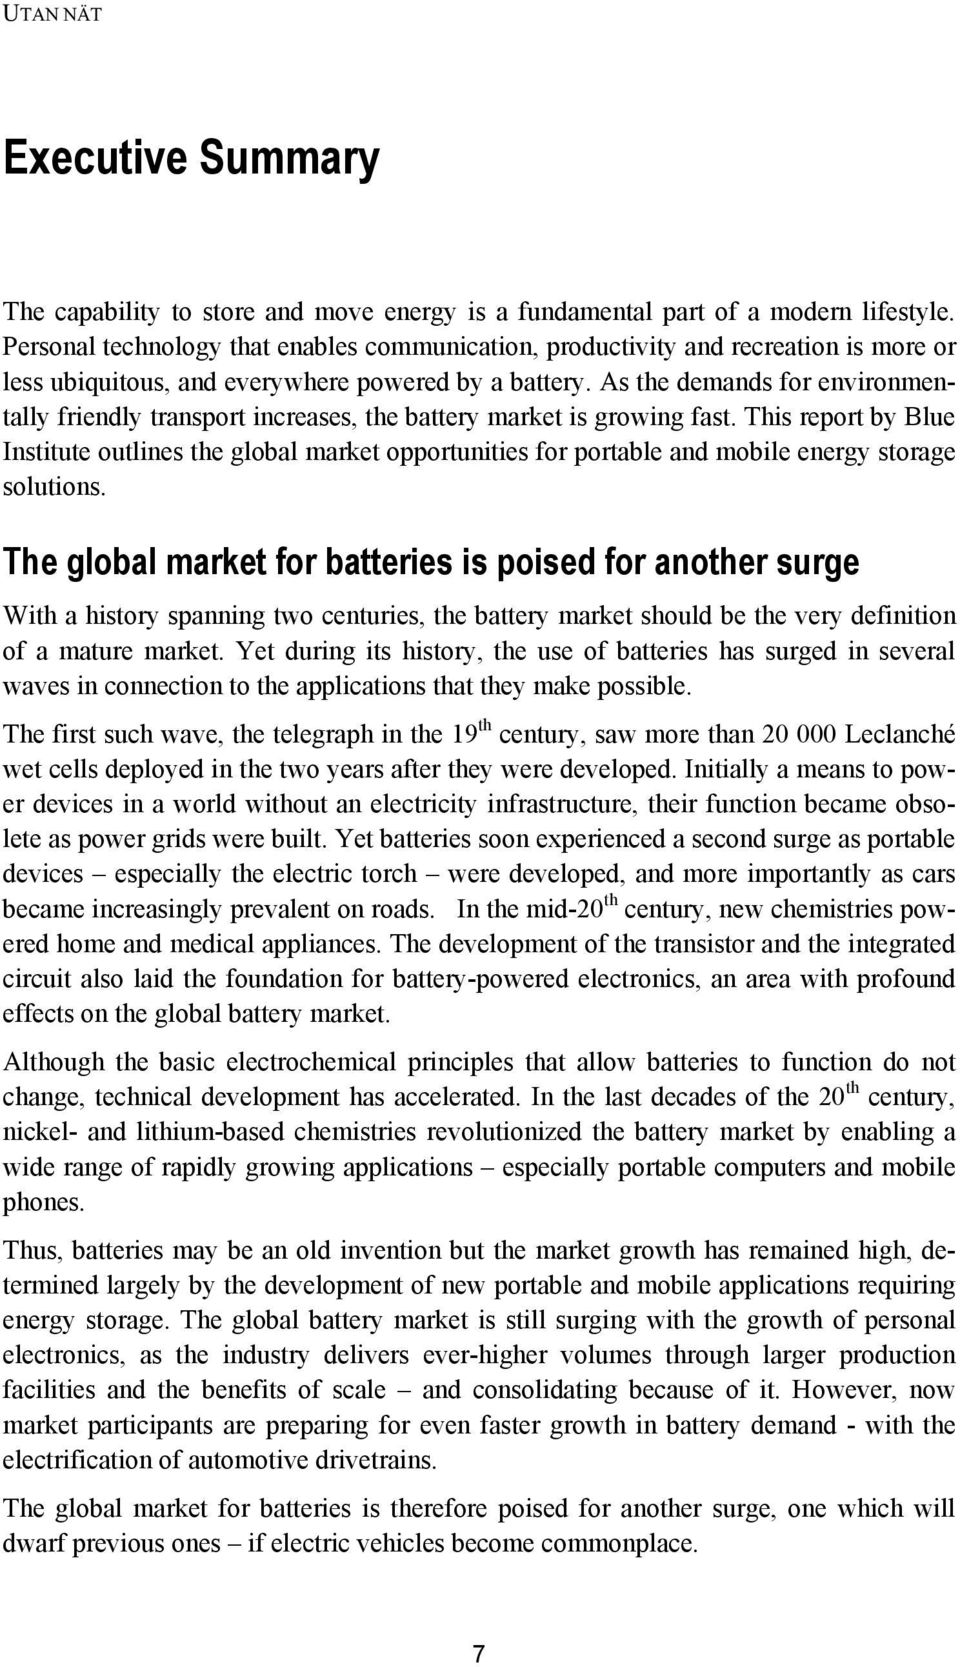 As the demands for environmentally friendly transport increases, the battery market is growing fast.